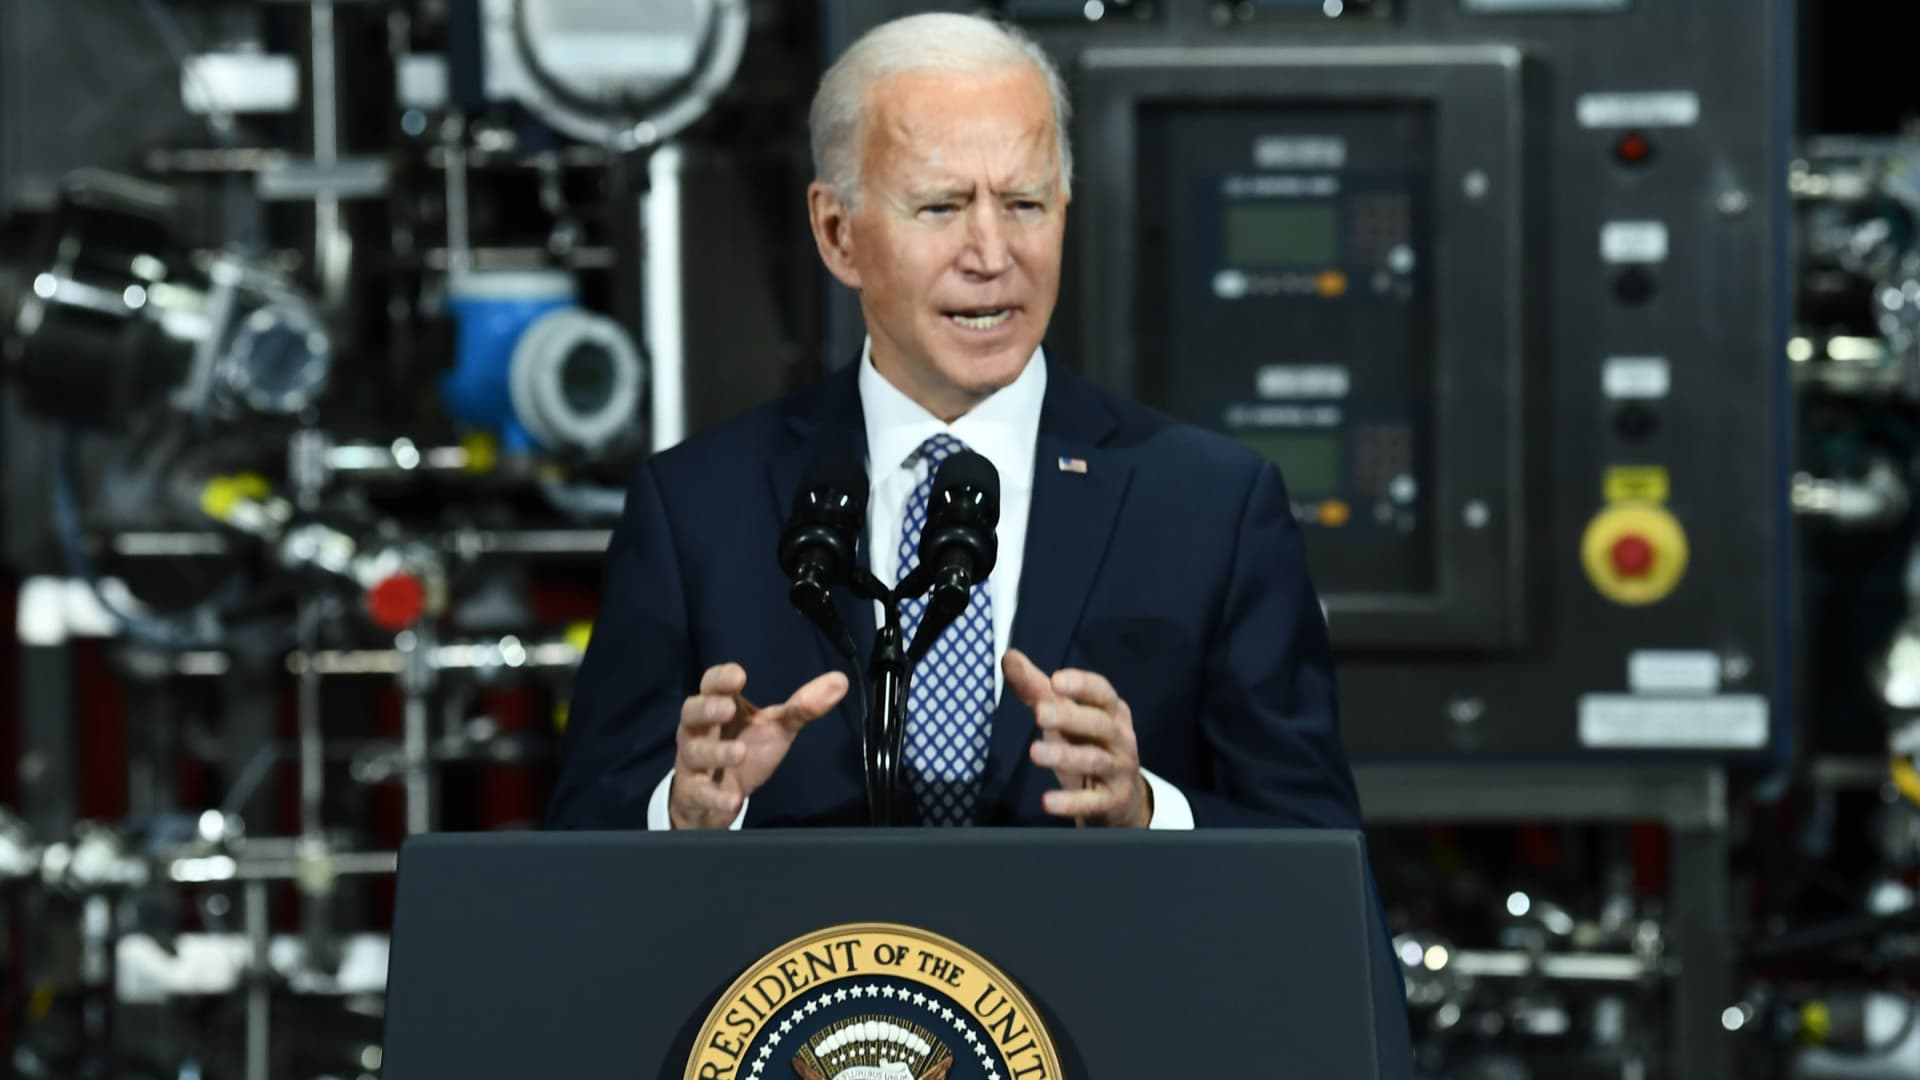 US President Joe Biden speaks at the Covid-19 vaccine Pfizer Kalamazoo Manufacturing Site on February 19, 2021, in Portage, Michigan.